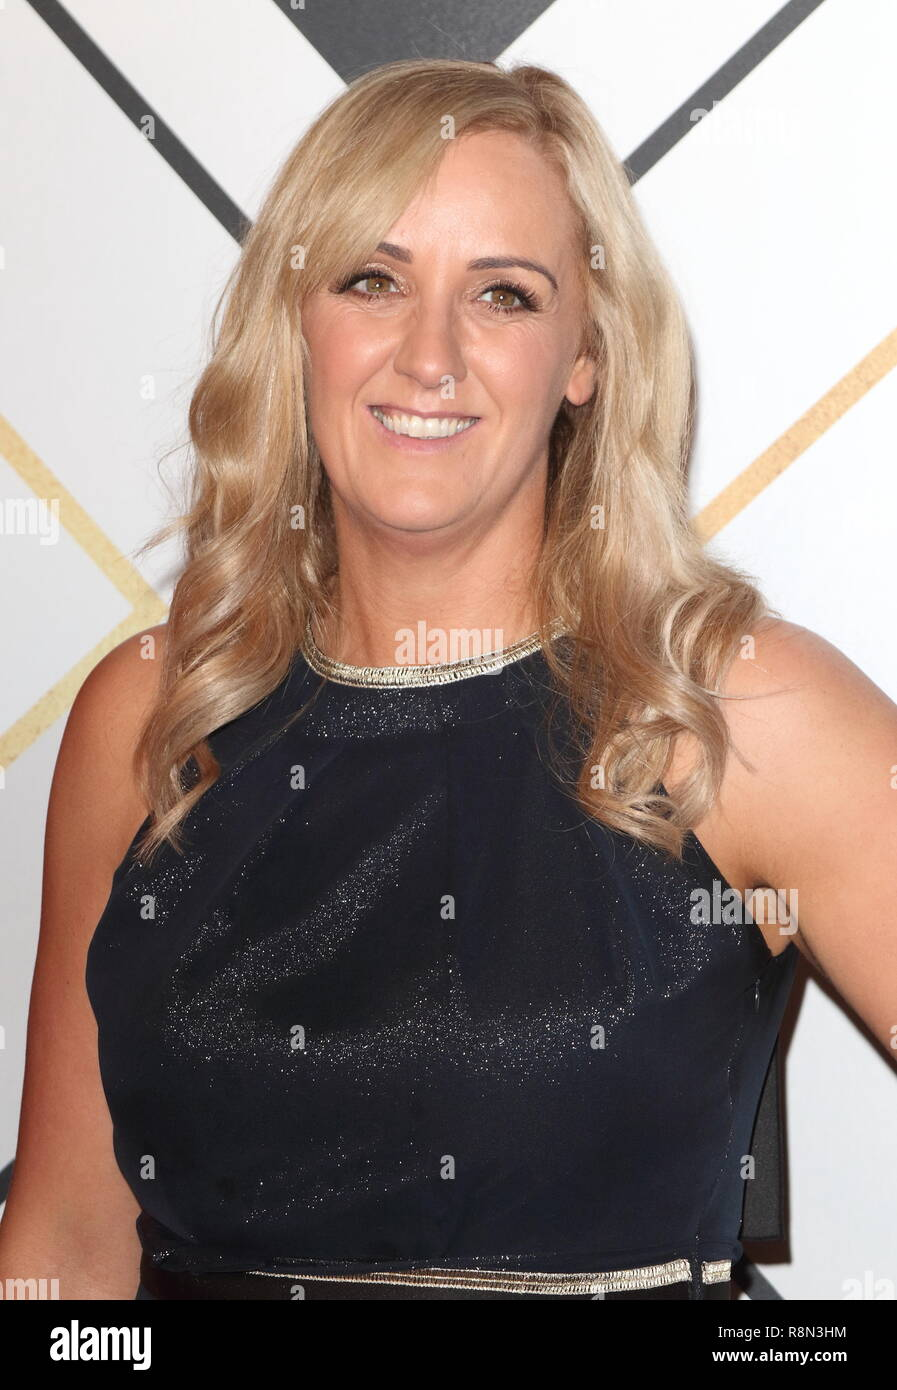 Birmingham, UK. 16th Dec, 2018. Tracey Neville on the red carpet at the BBC Sports Personality Of The Year 2018 at the Resorts World Arena. Credit: Keith Mayhew/SOPA Images/ZUMA Wire/Alamy Live News - Stock Image